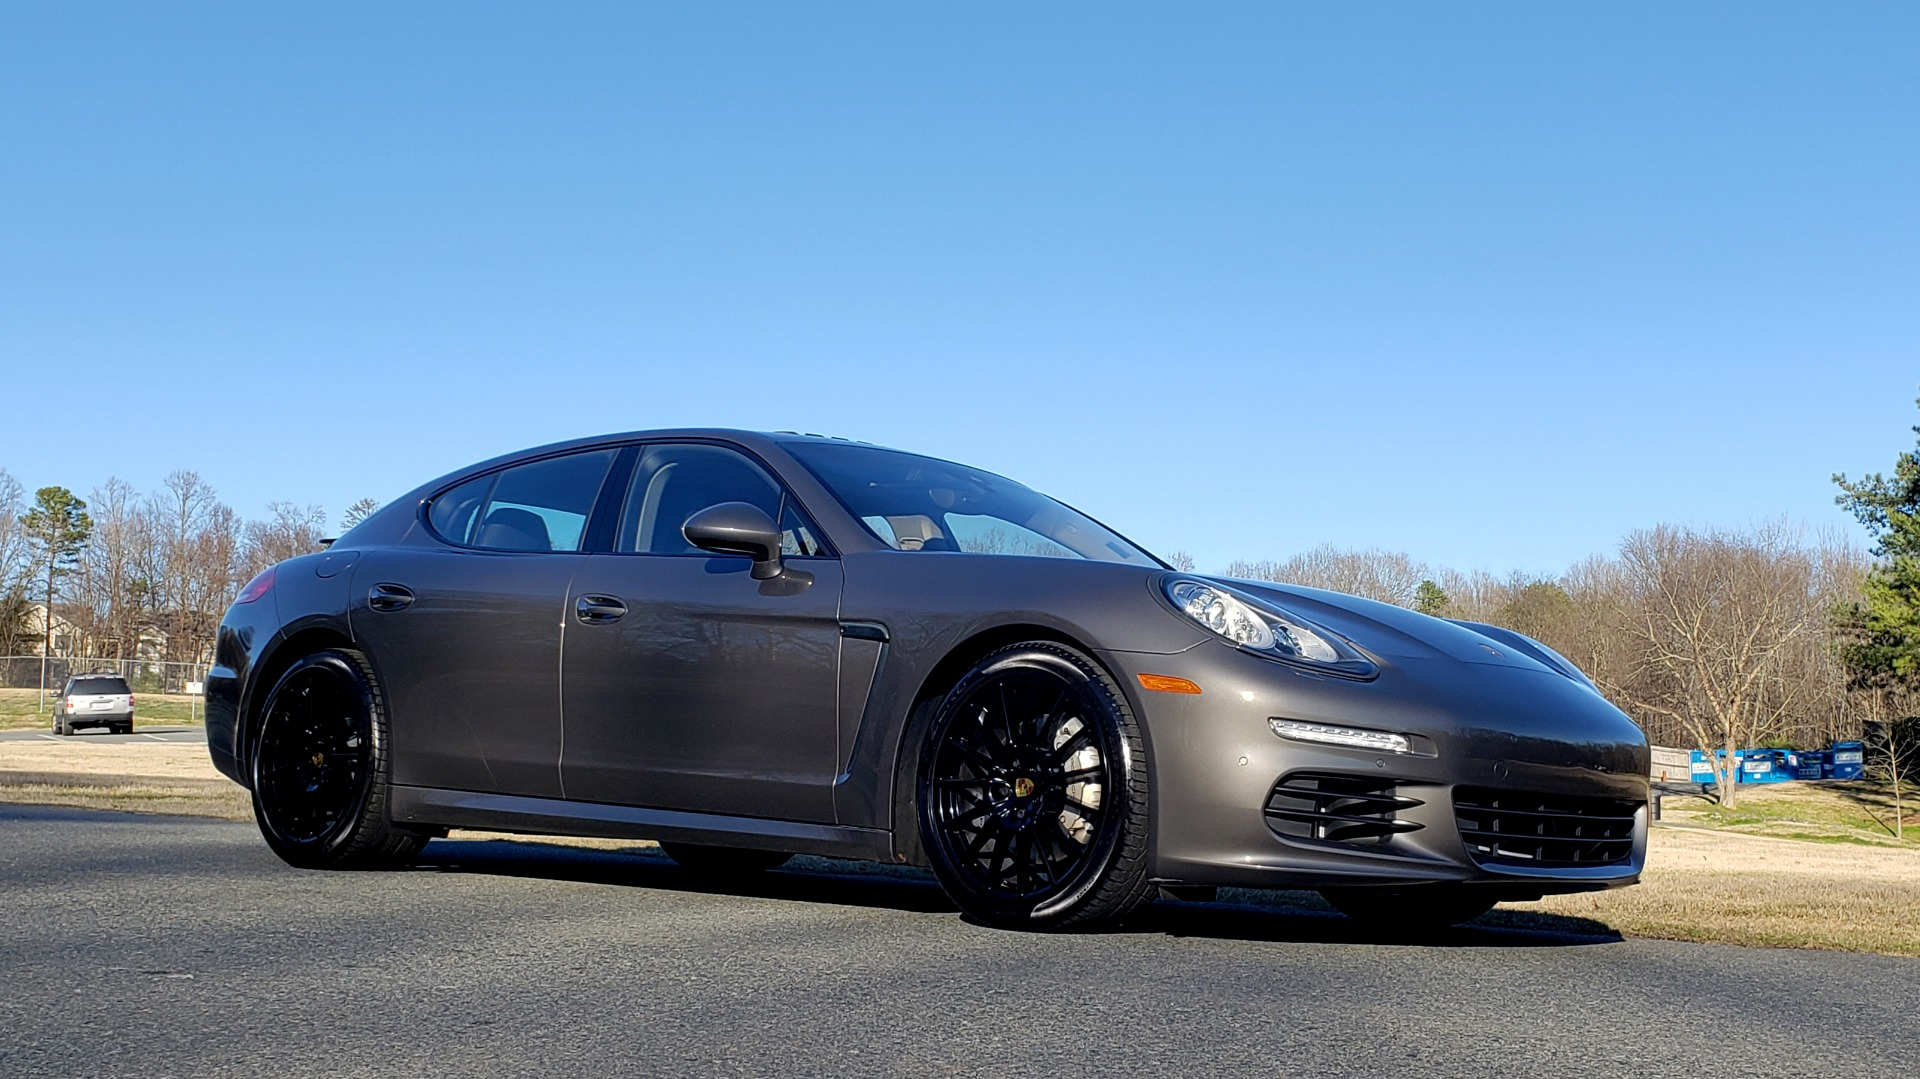 Used 2016 Porsche PANAMERA S / TURBO V6 / PDK / NAV / BOSE / SNRF / LDW / REARVIEW for sale Sold at Formula Imports in Charlotte NC 28227 38